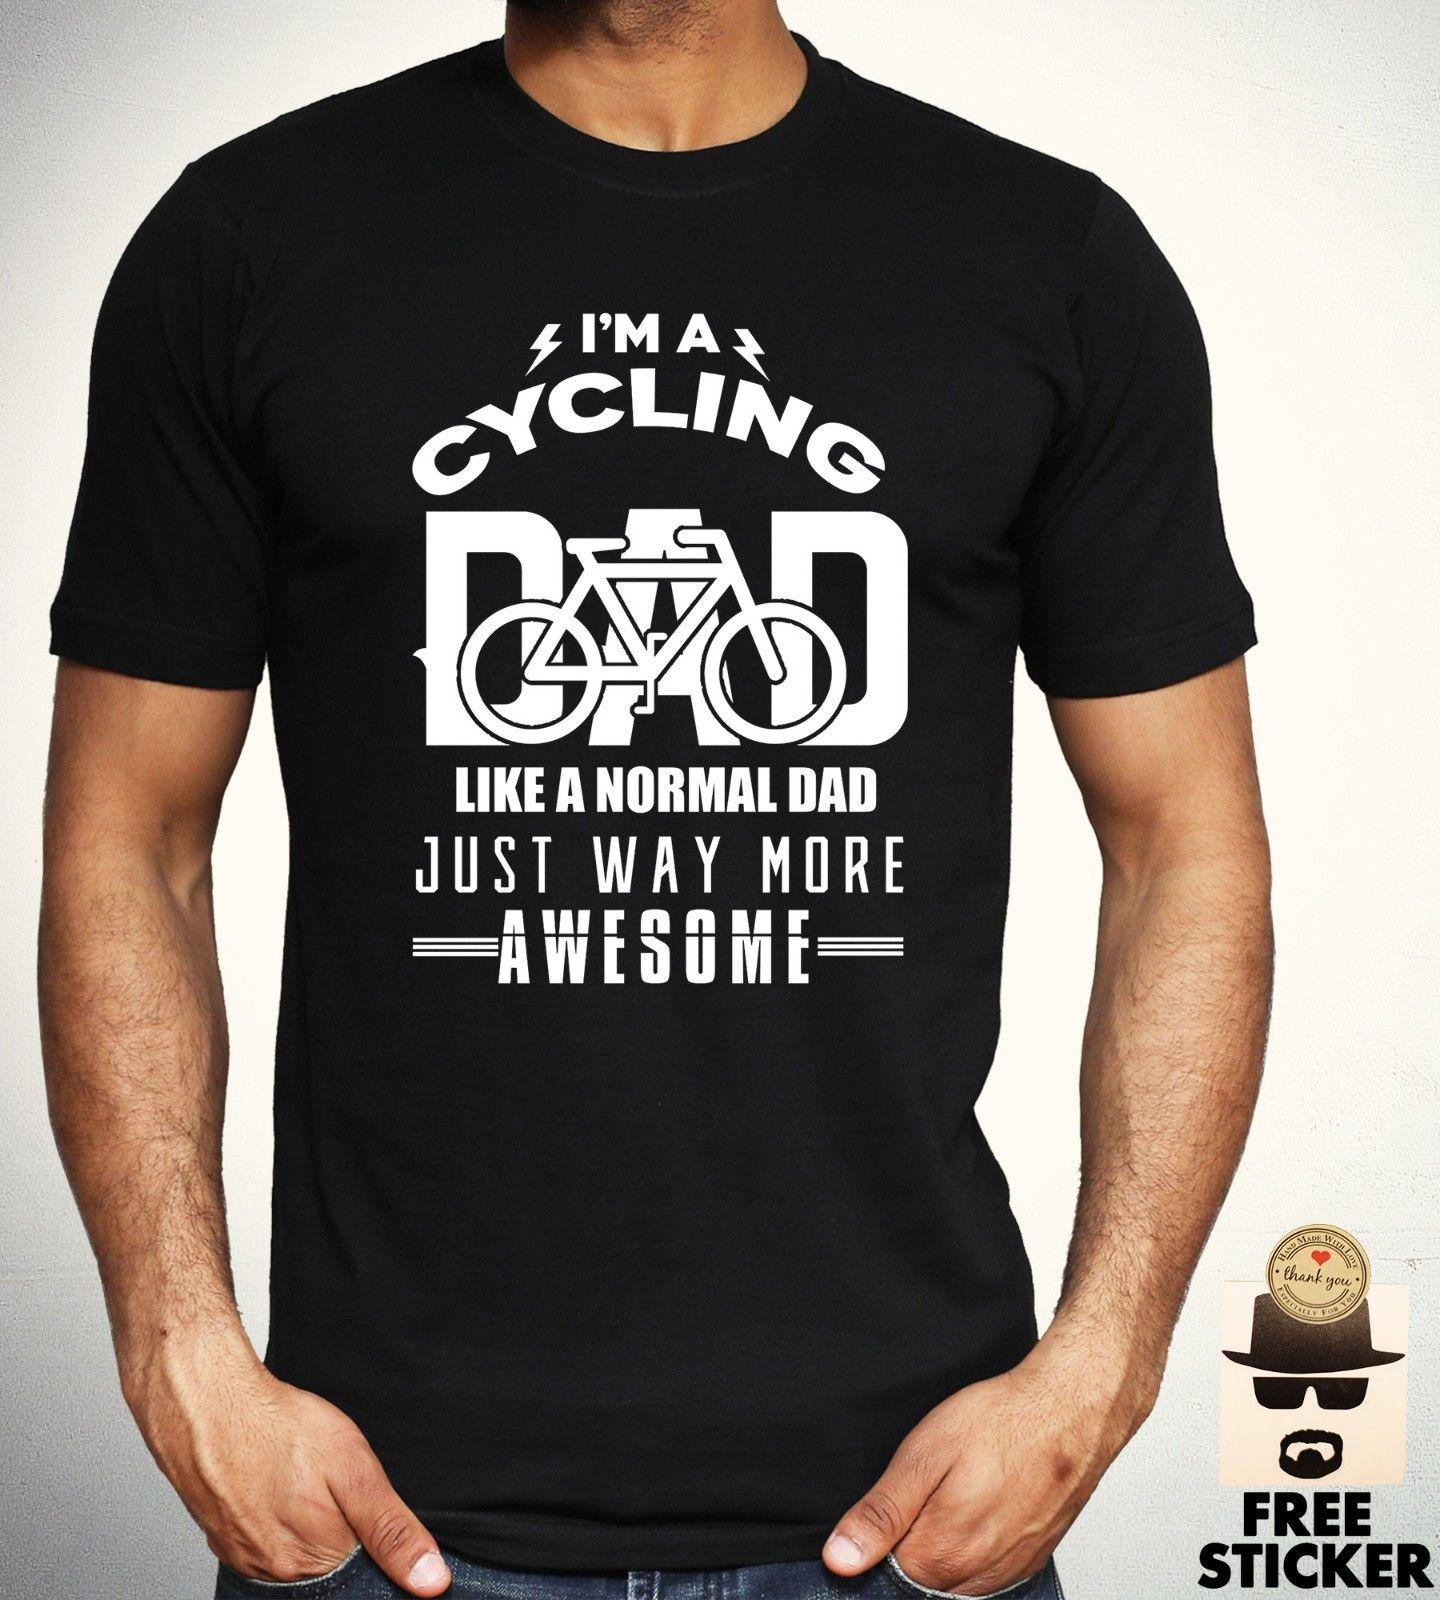 Cycling Dad T Shirt Funny Birthday Gift Present Tee Cool Fathers Top Men S XXXL Fun Shirts Silly From Printforless51 1158